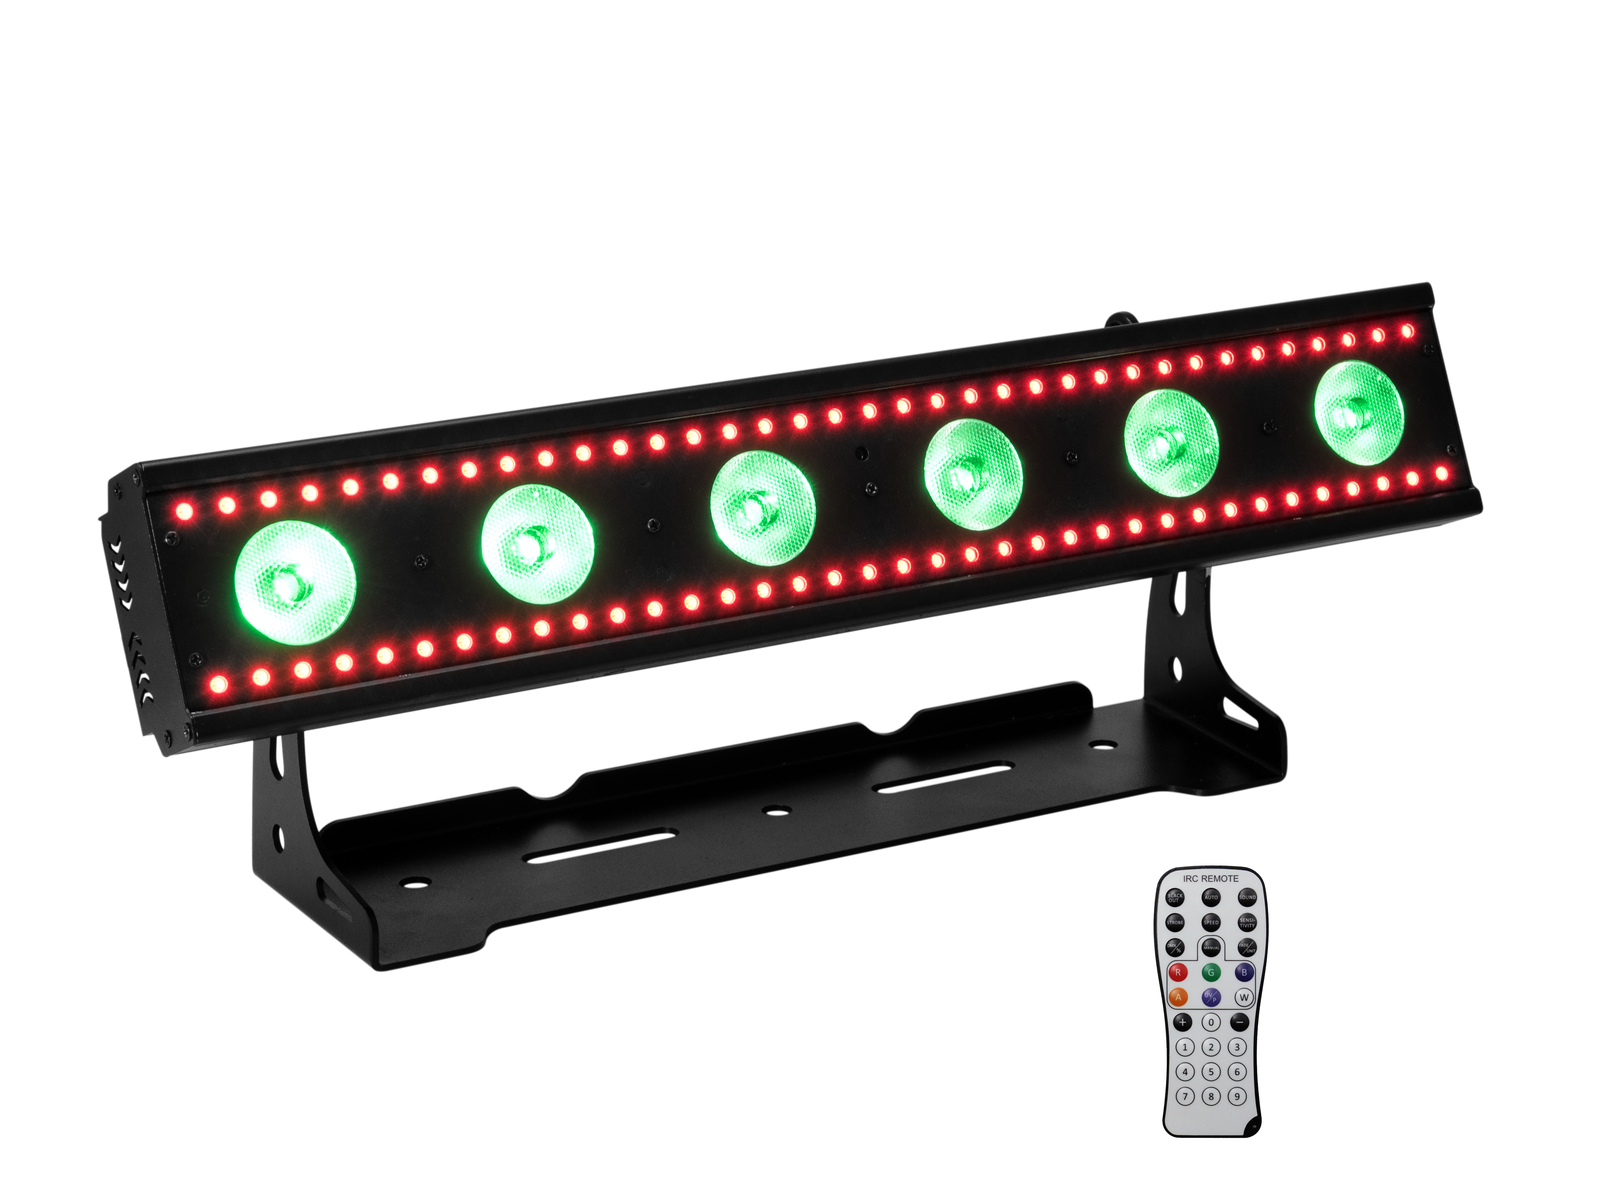 EUROLITE LED PIX-7 Ibrido SCL Bar